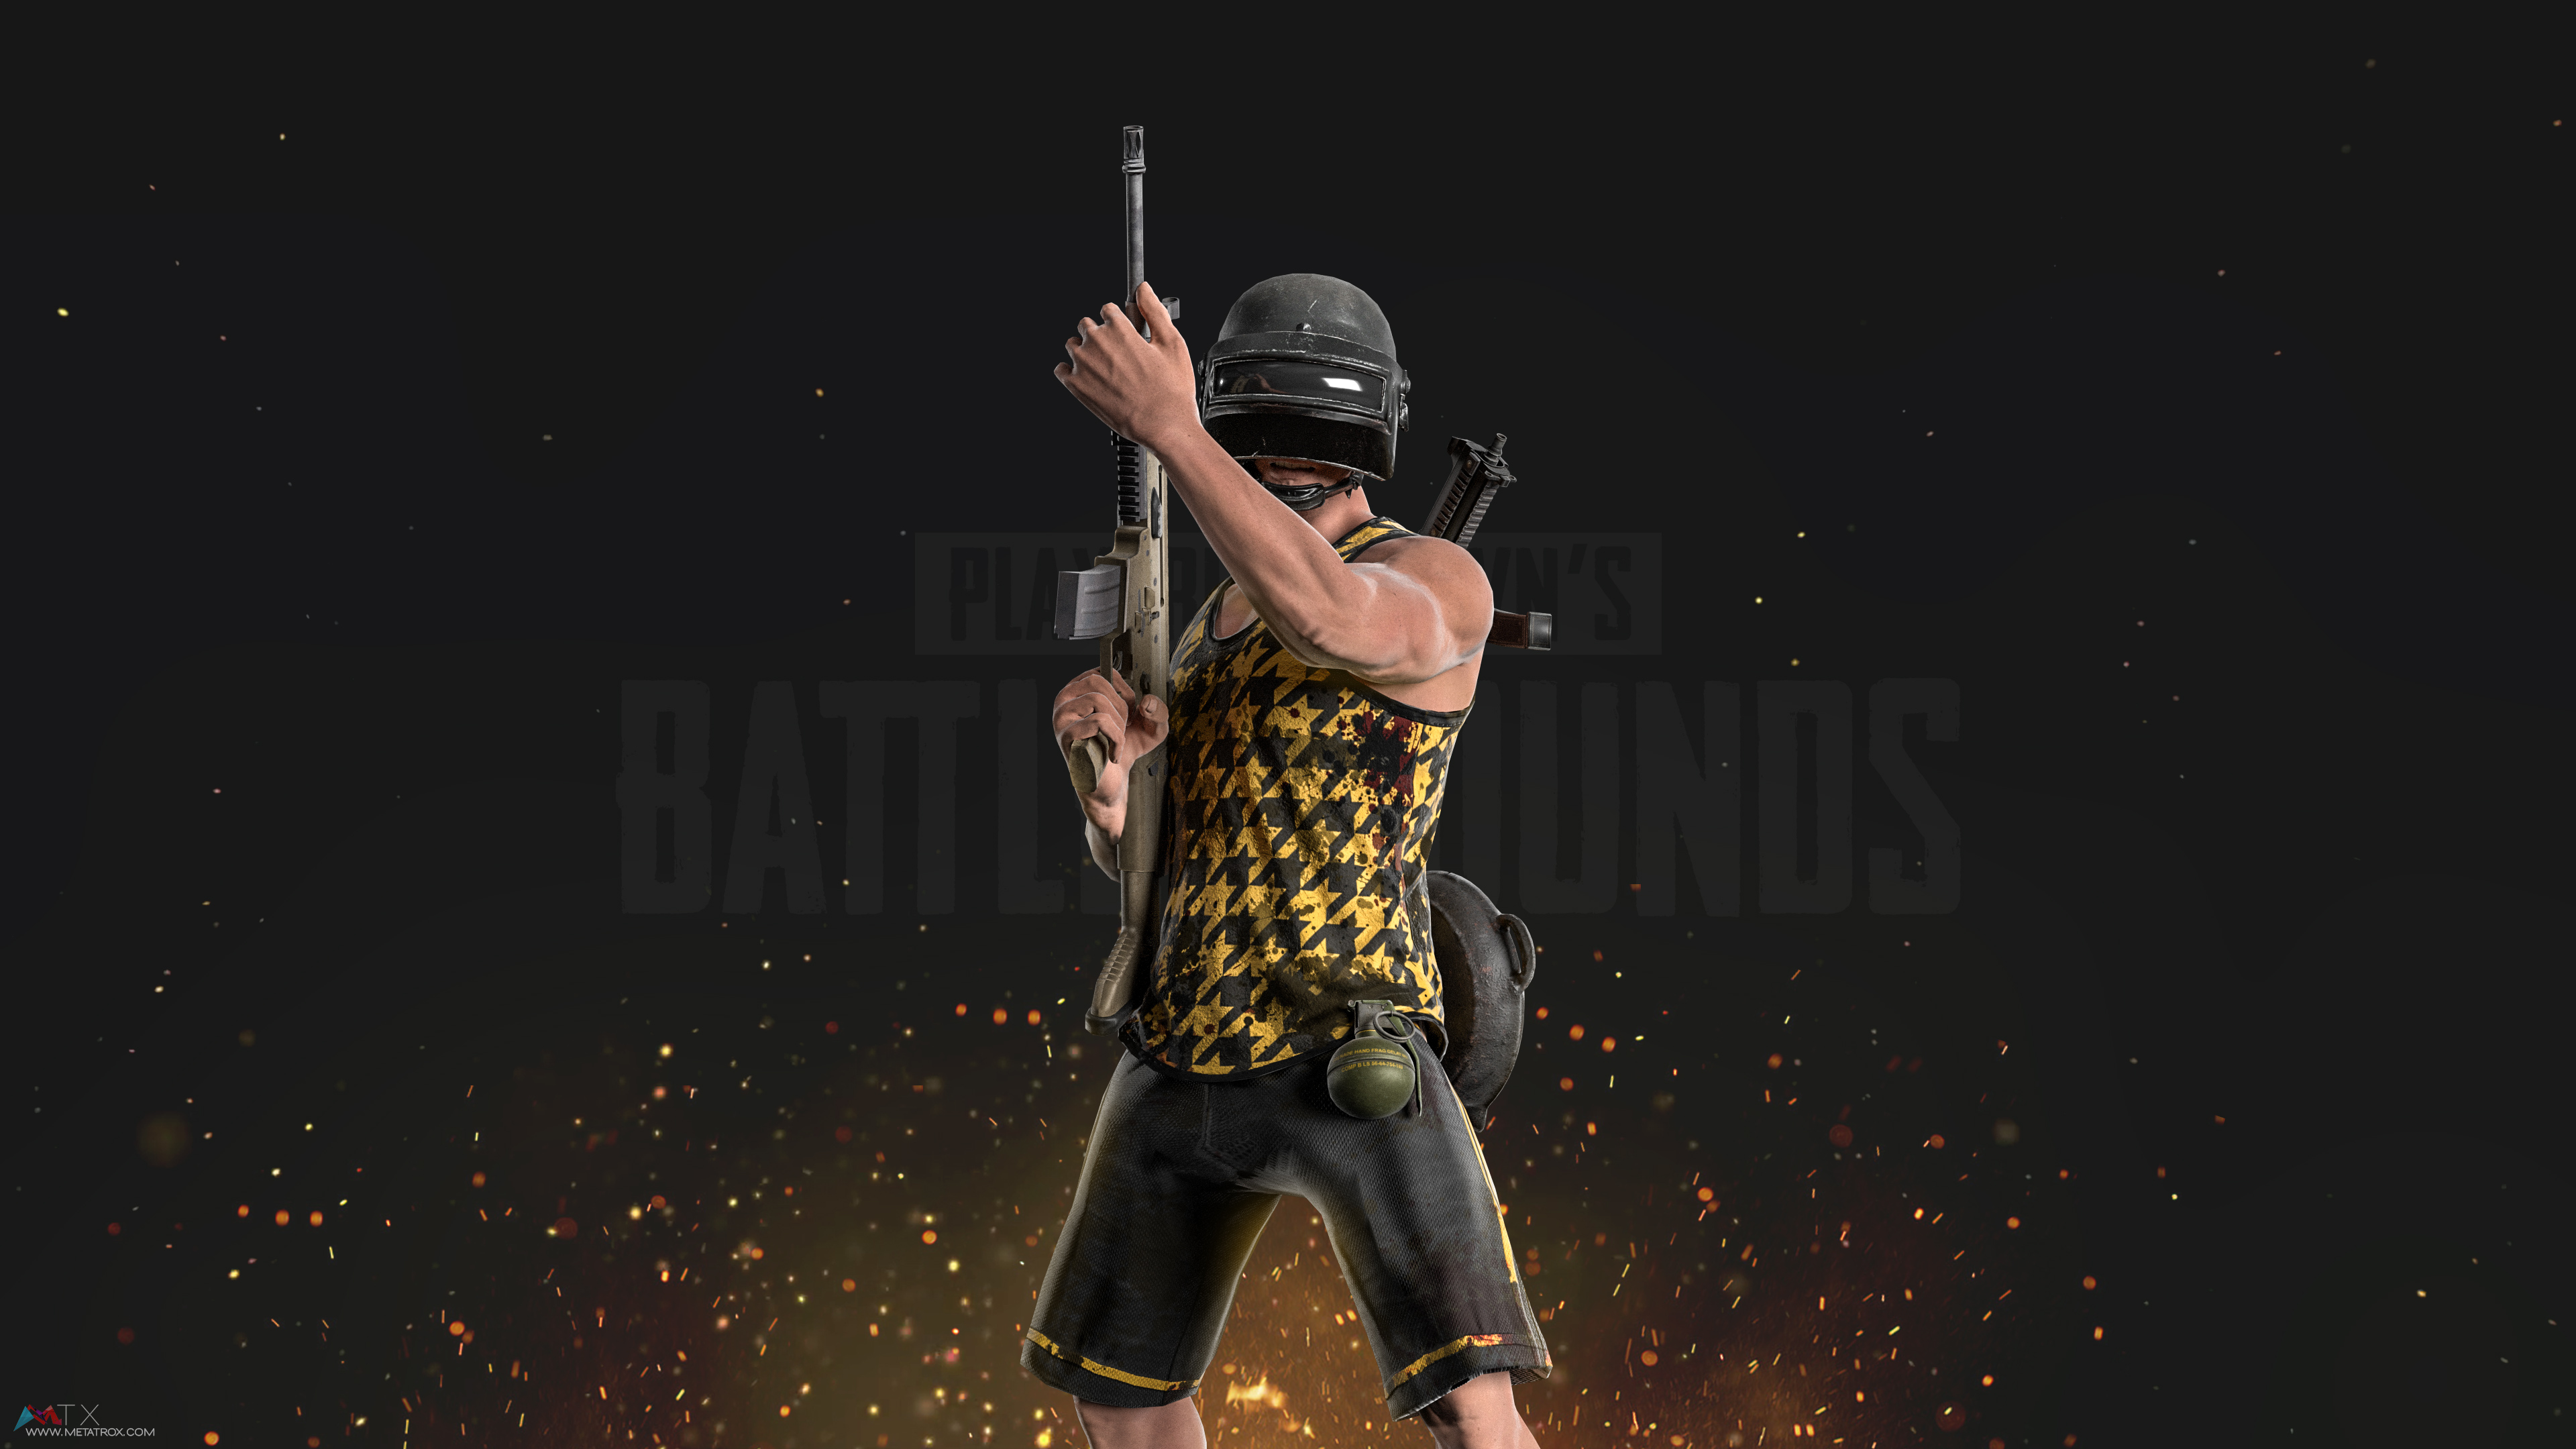 Pubg Hd Wallpaper 4k For Laptop: PUBG PlayerUnknown's Battlegrounds 4K Wallpapers